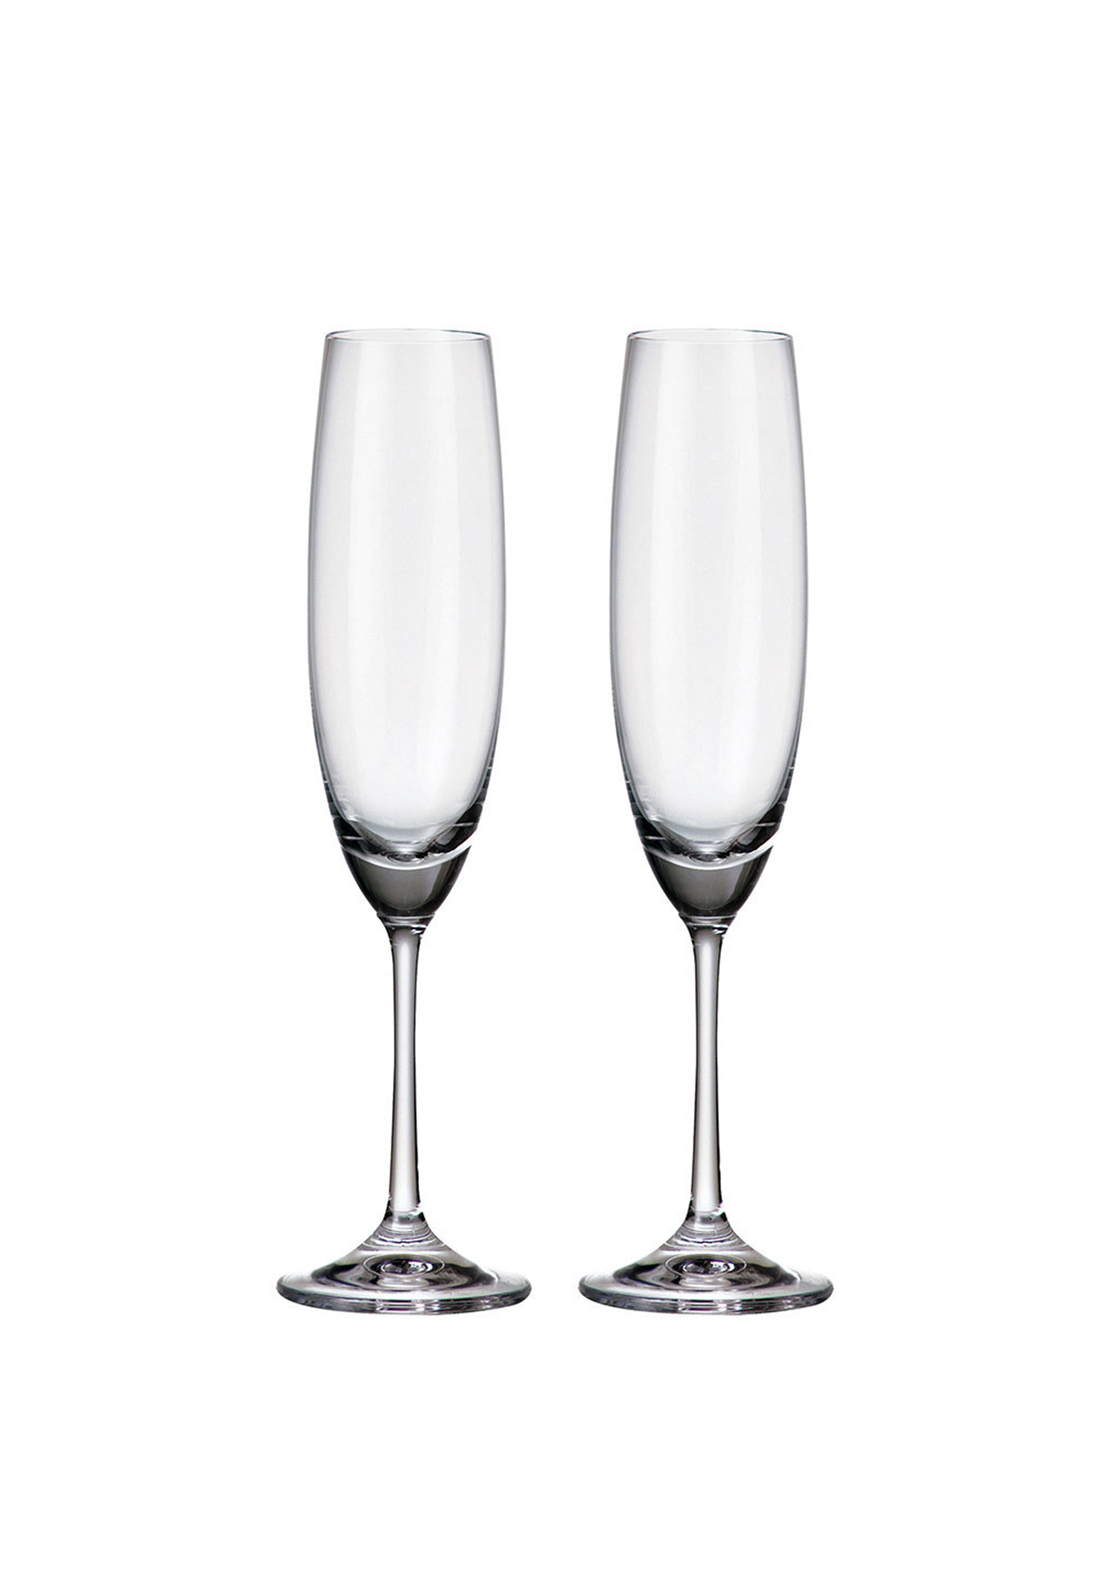 Tipperary Crystal Connoisseur Set of 2 Champaign Flutes Gift Box